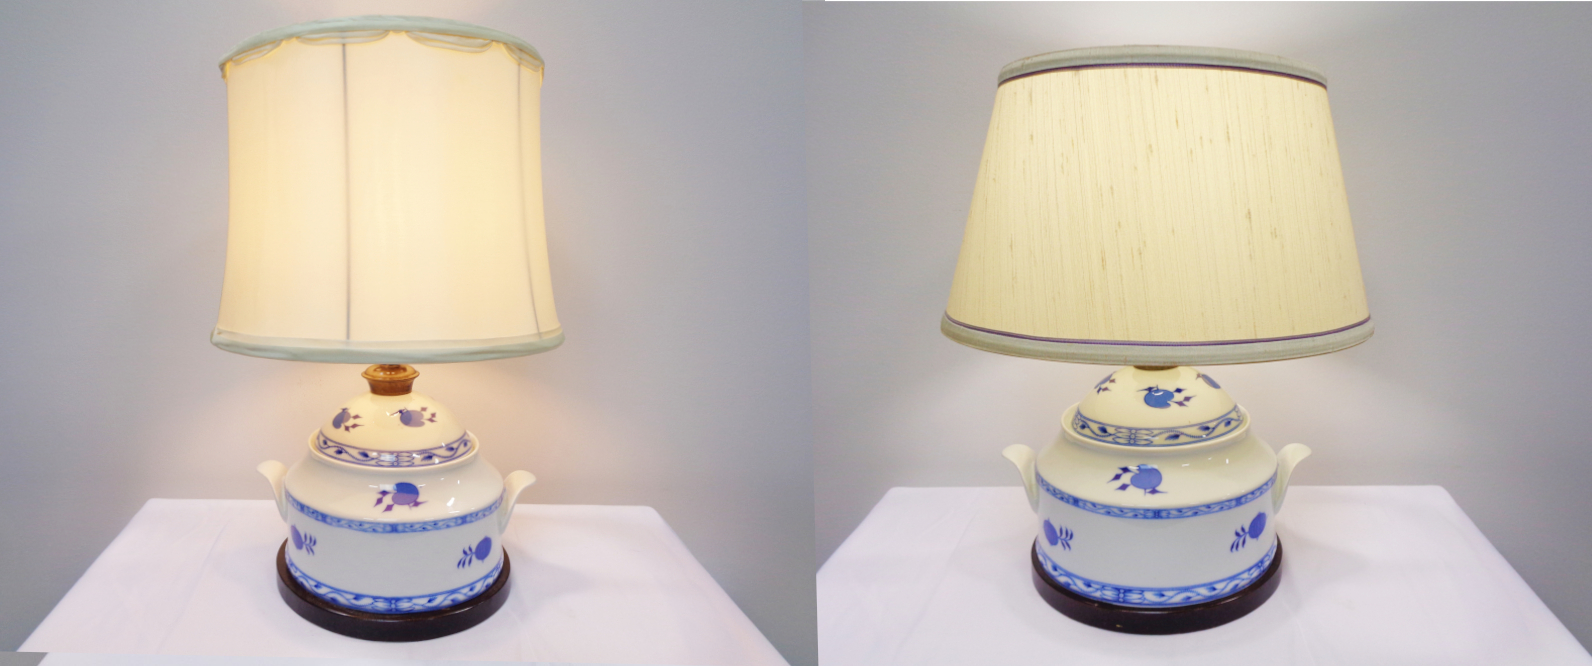 Pair of Onion Pattern Lamps